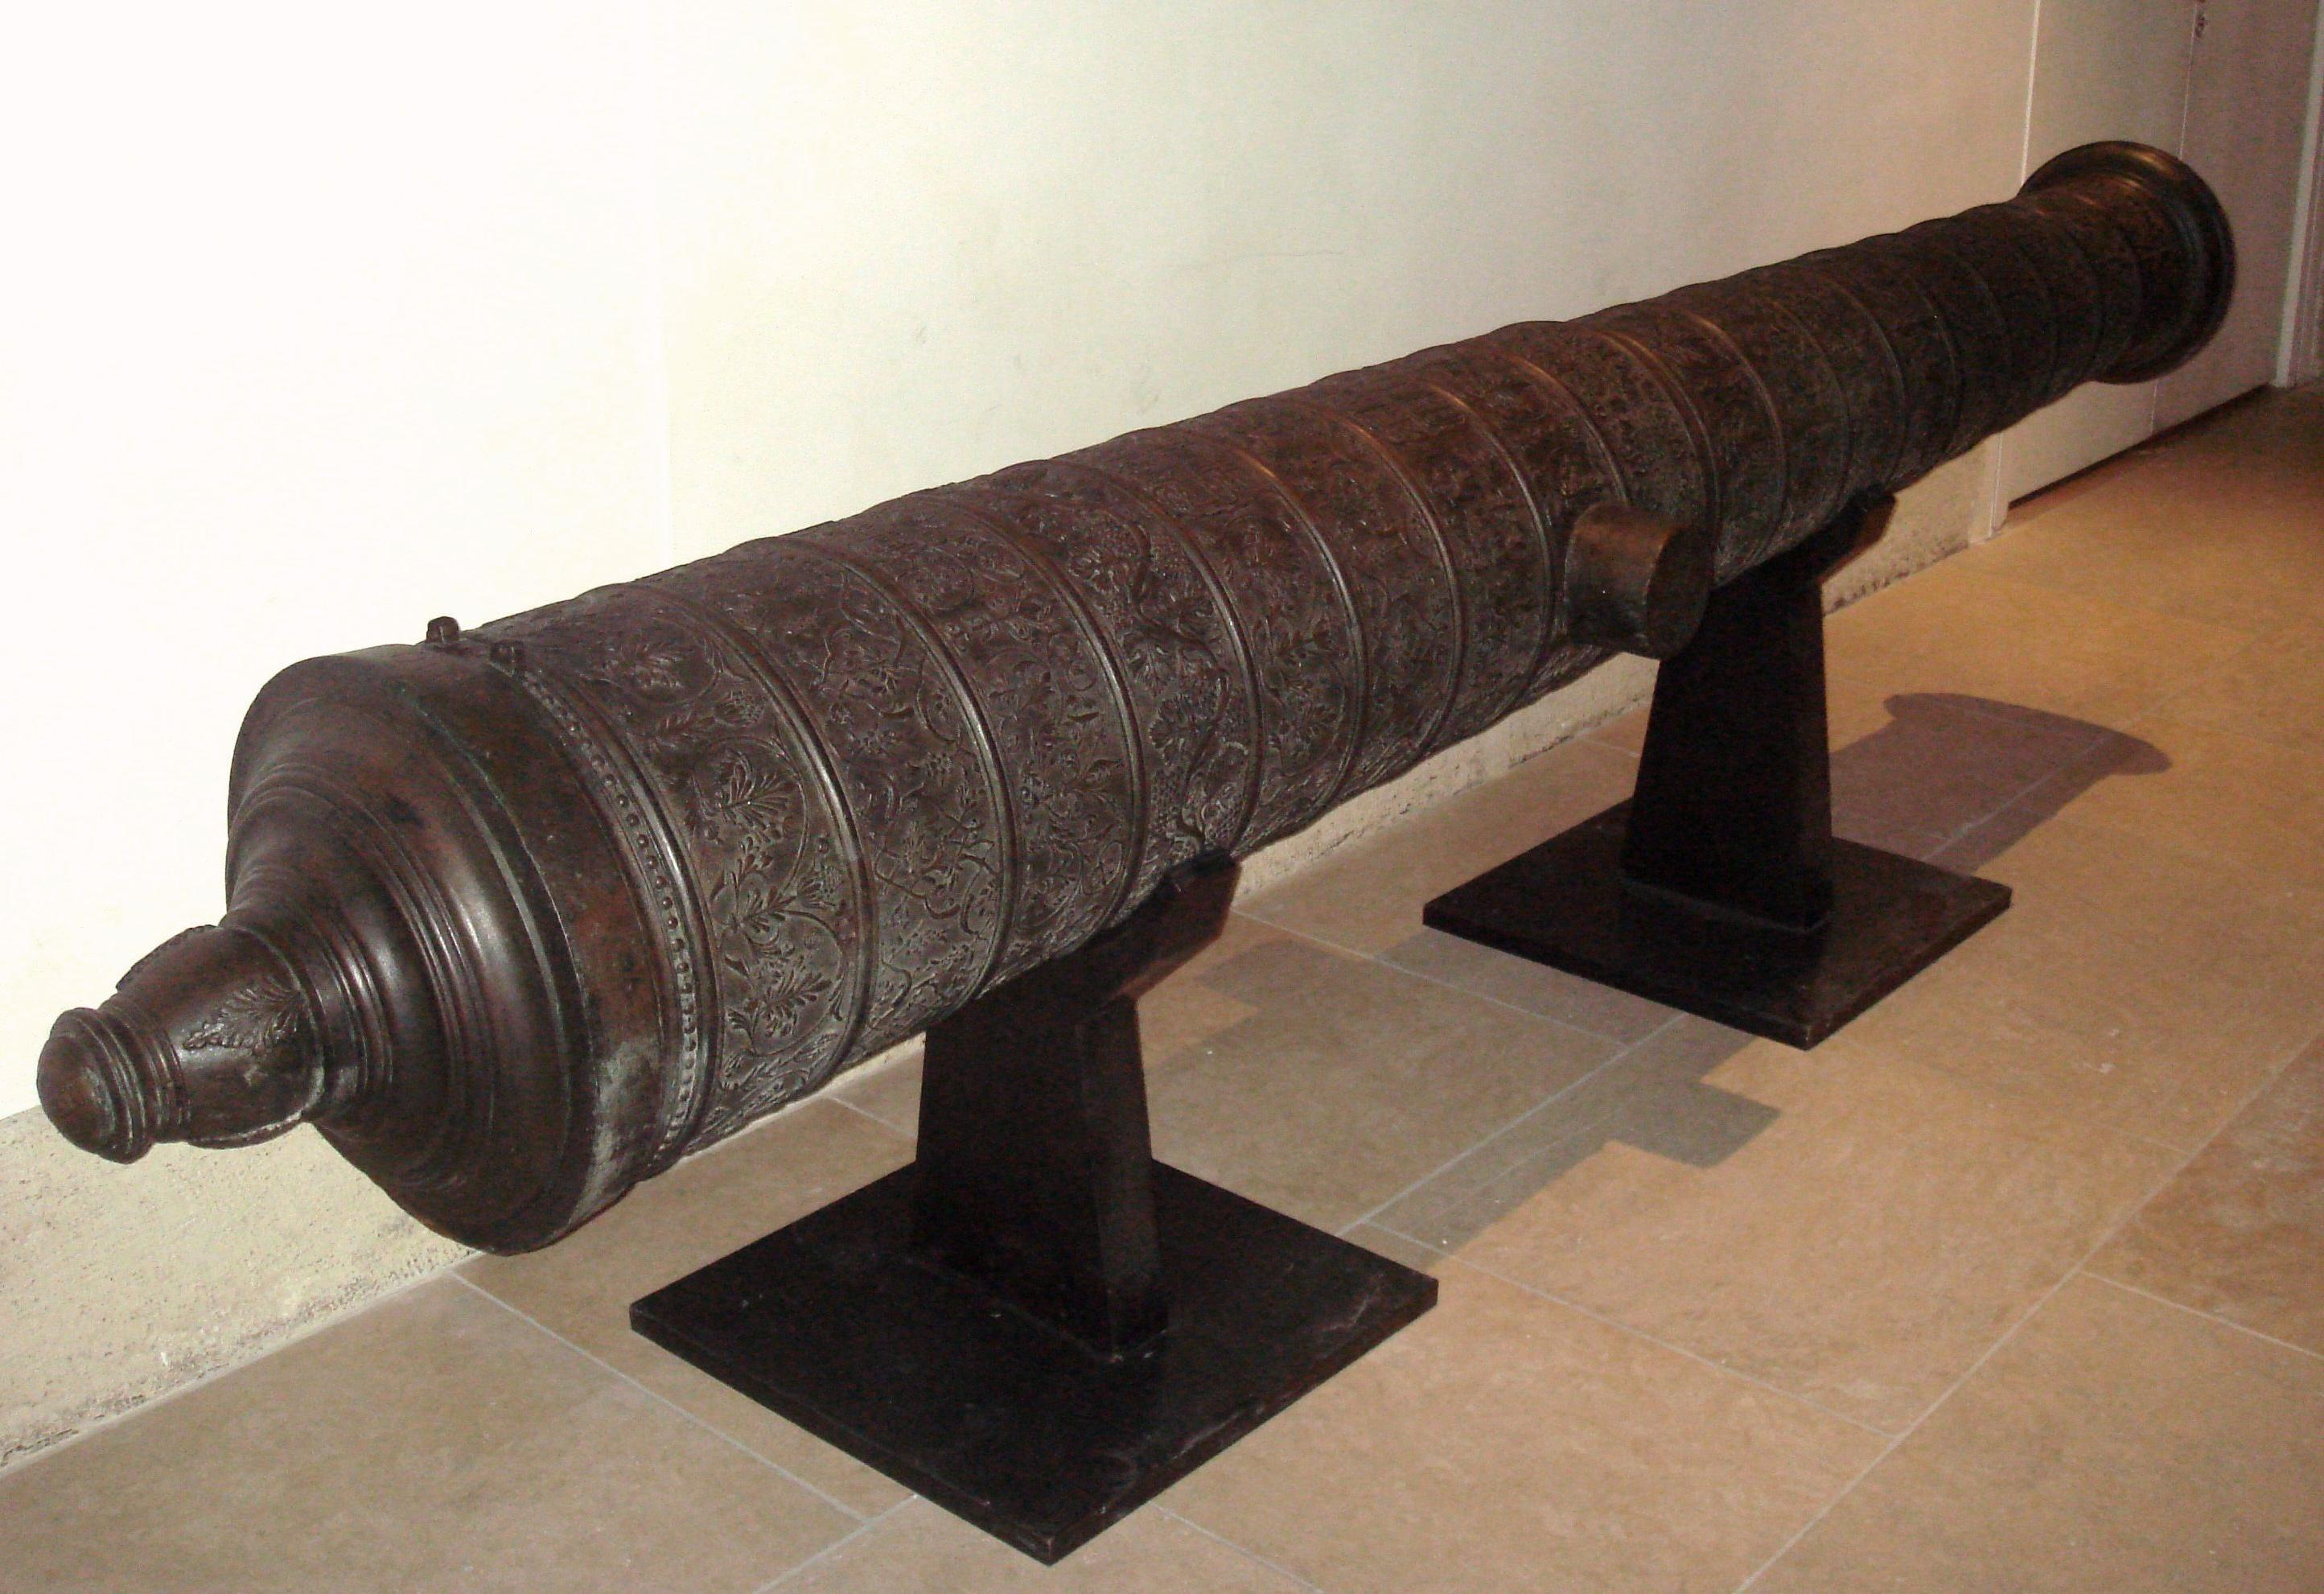 Fileottoman Cannon End Of 16th Century Length 385cm Cal 178mm